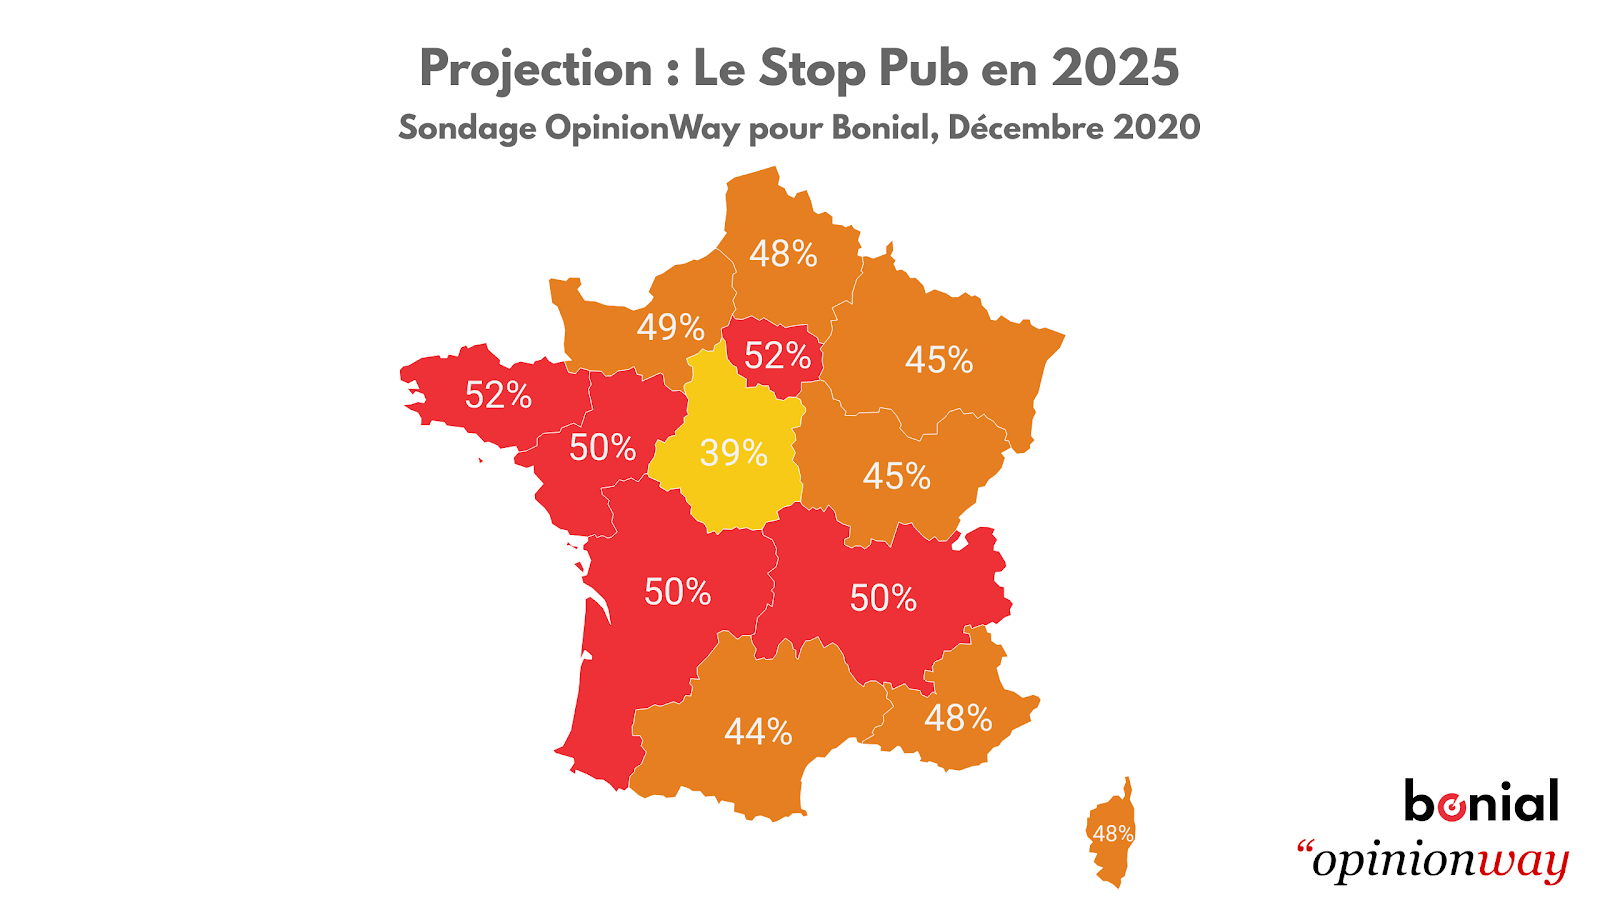 Sondage Opinionway bonial carte de france projection 2025 stop pub